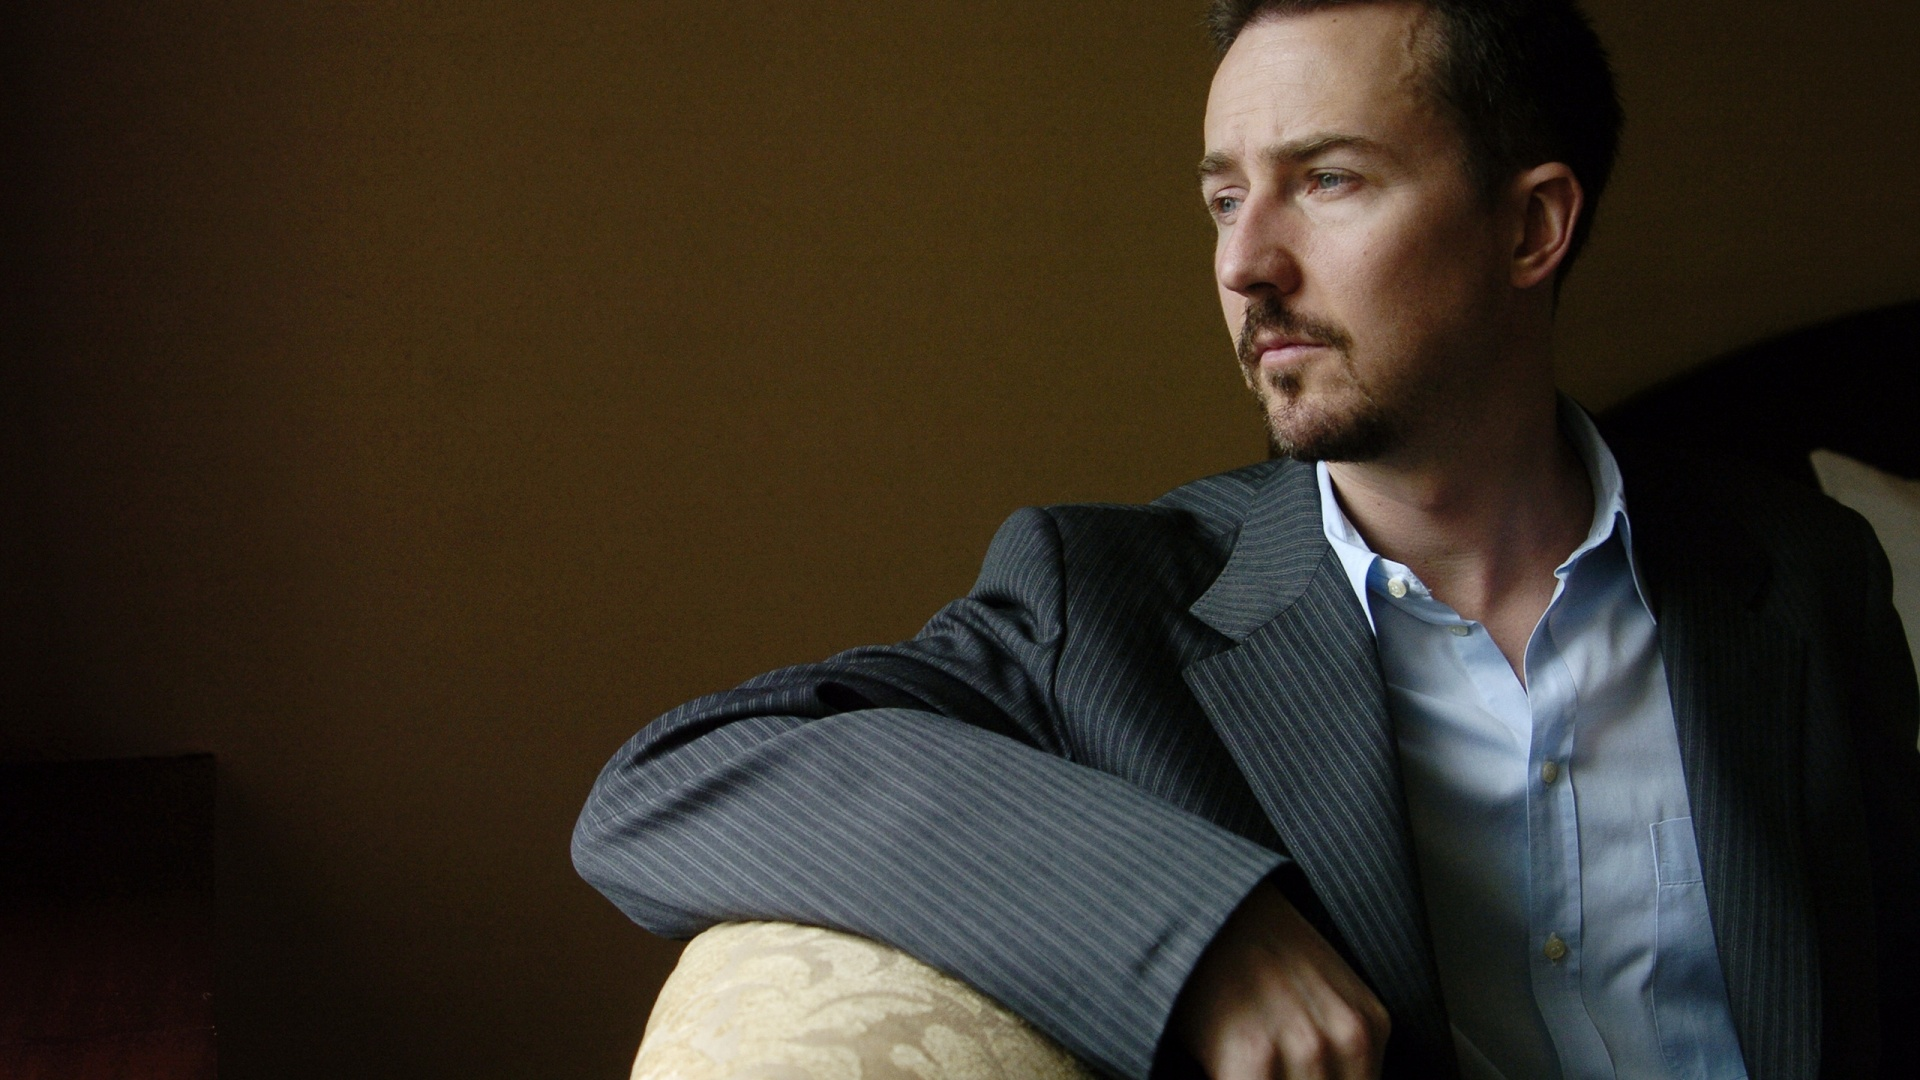 Edward Norton Wallpaper 1   1920 X 1080 stmednet 1920x1080